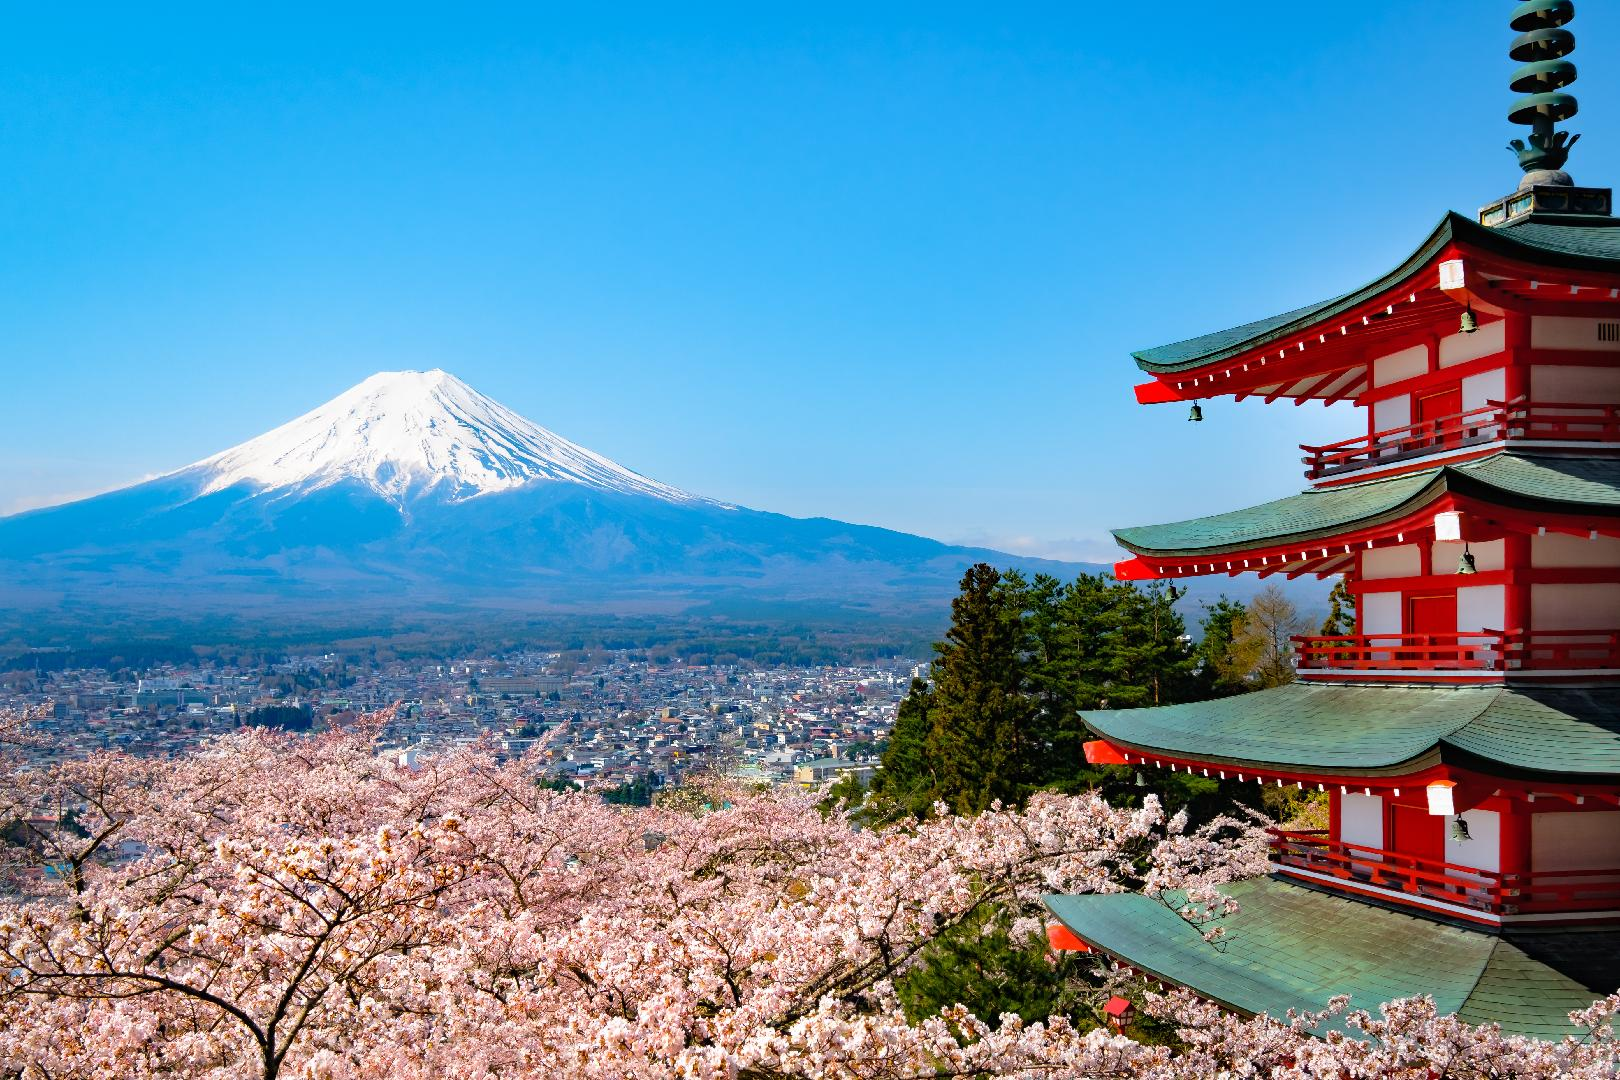 Yamanashi, Japan's surprise up-and-coming wine region